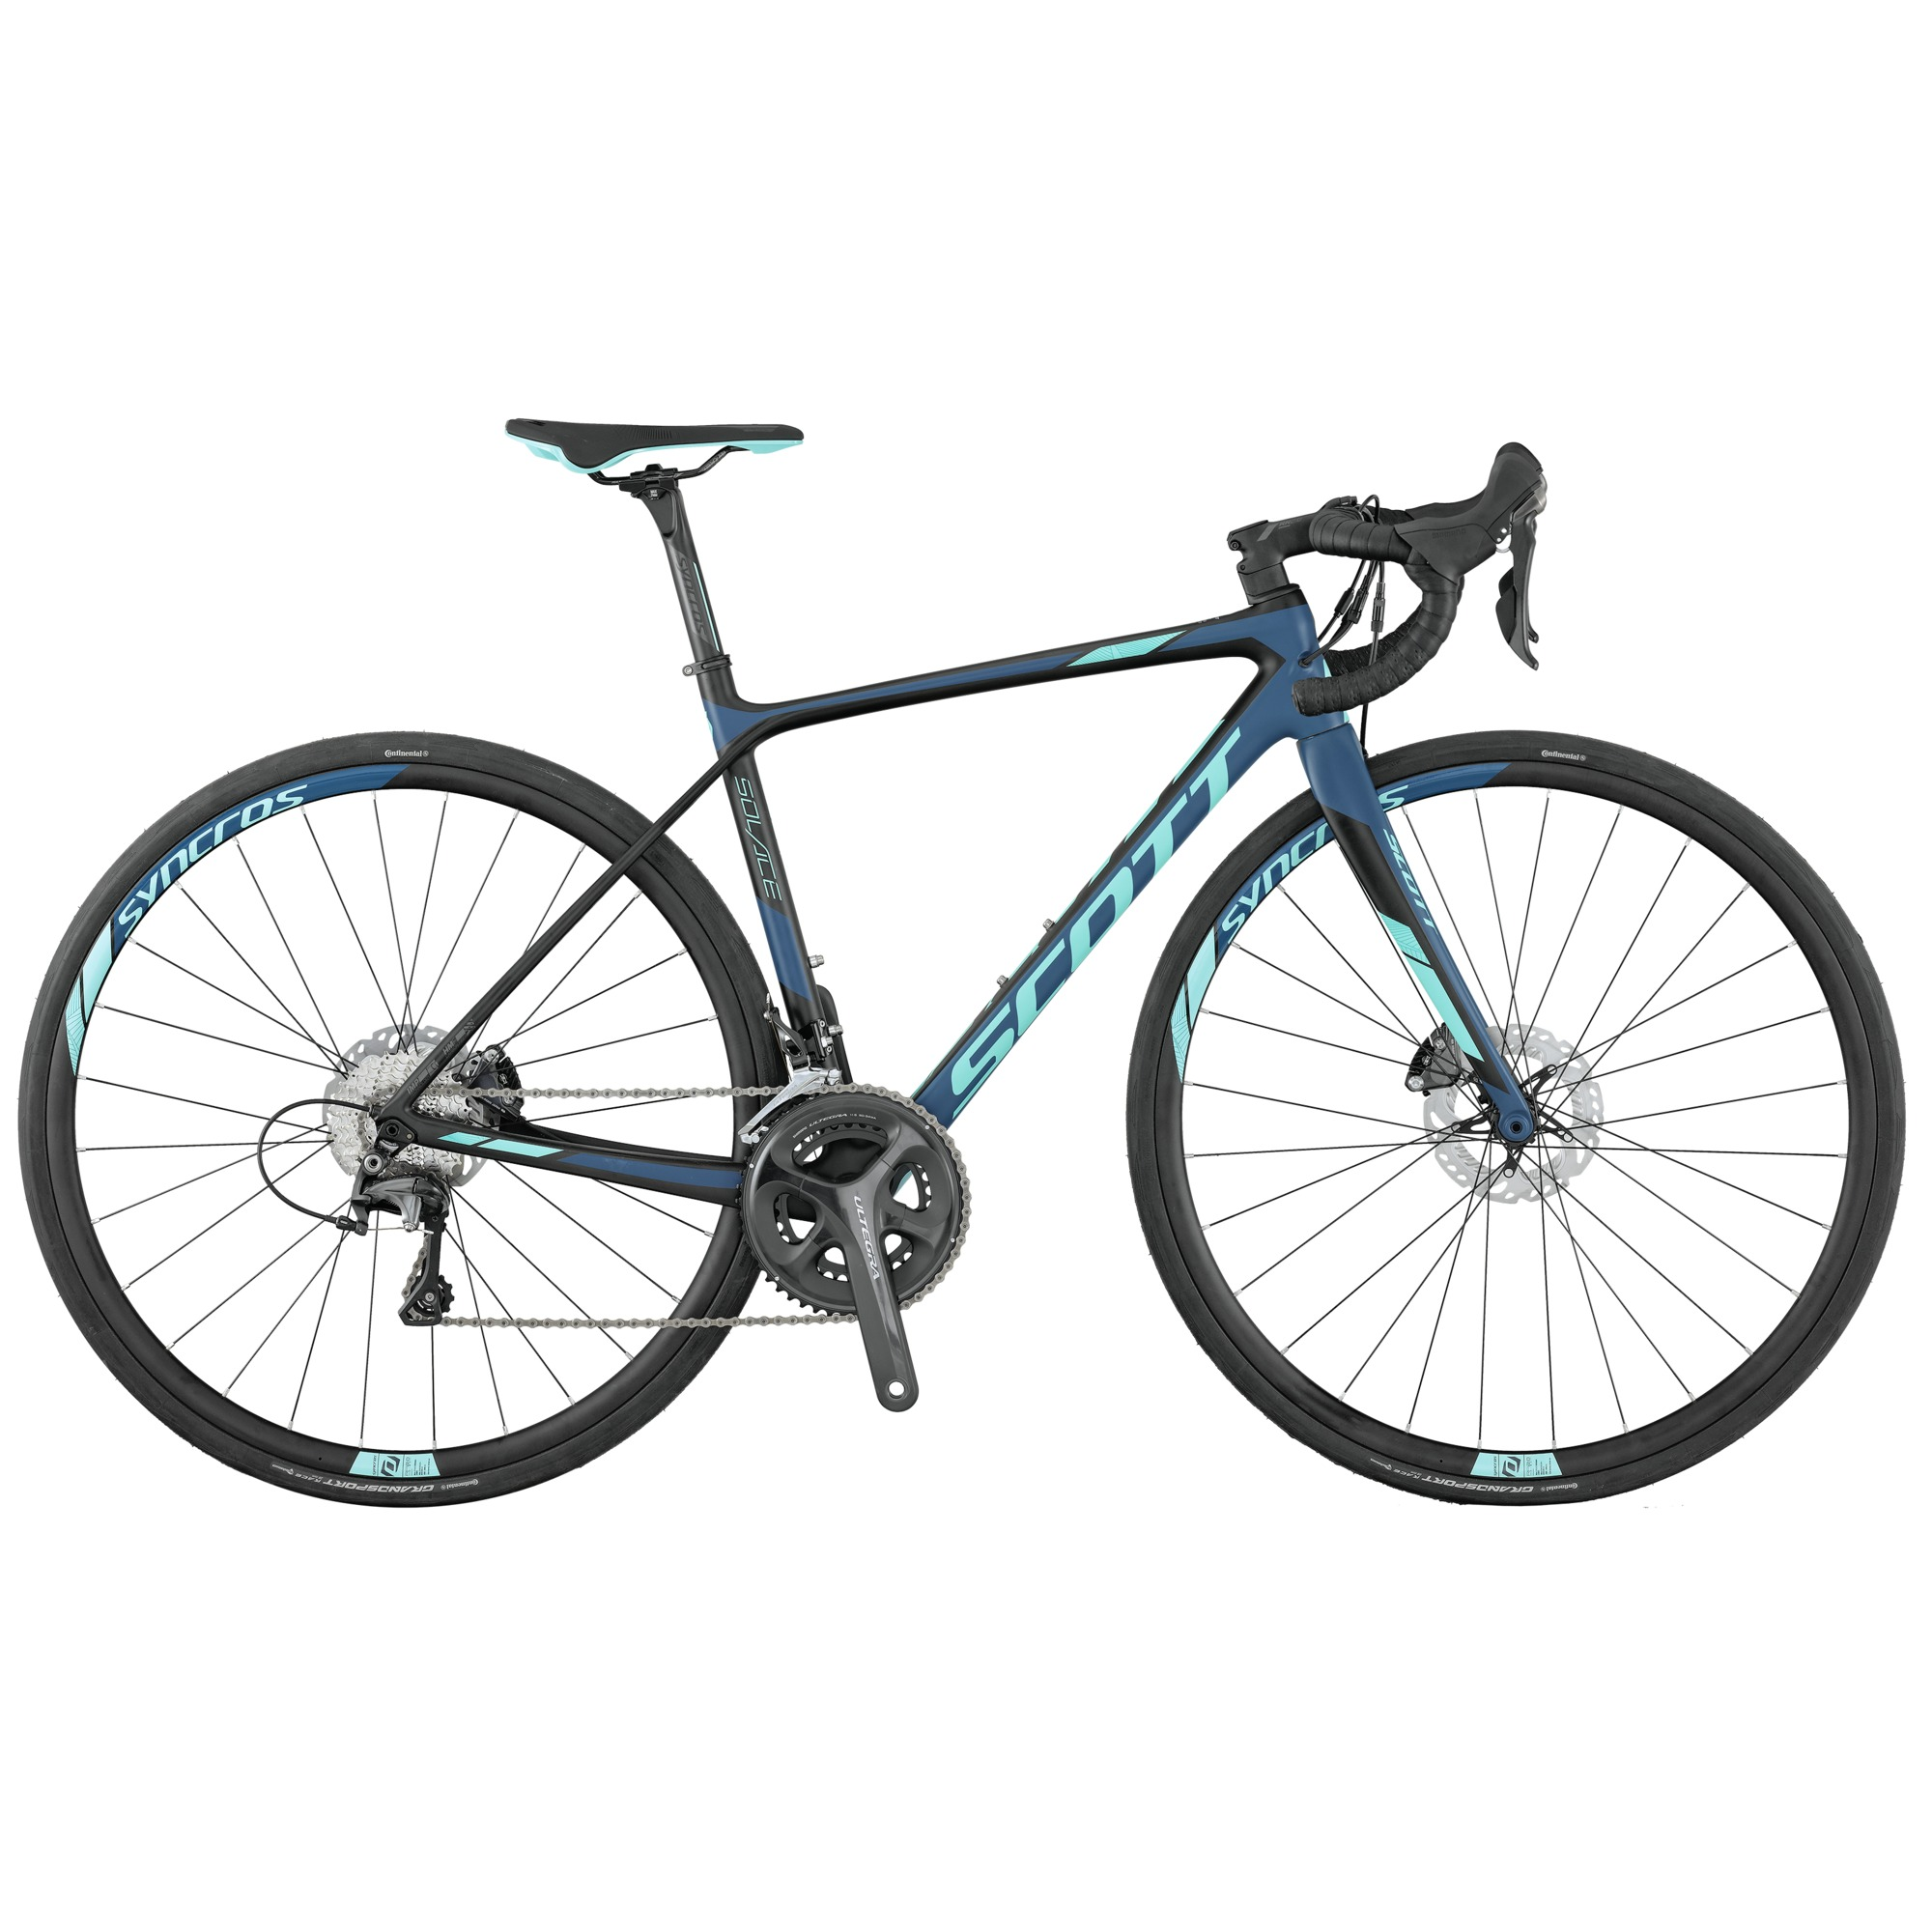 SCOTT Contessa Solace 15 Disc Bike